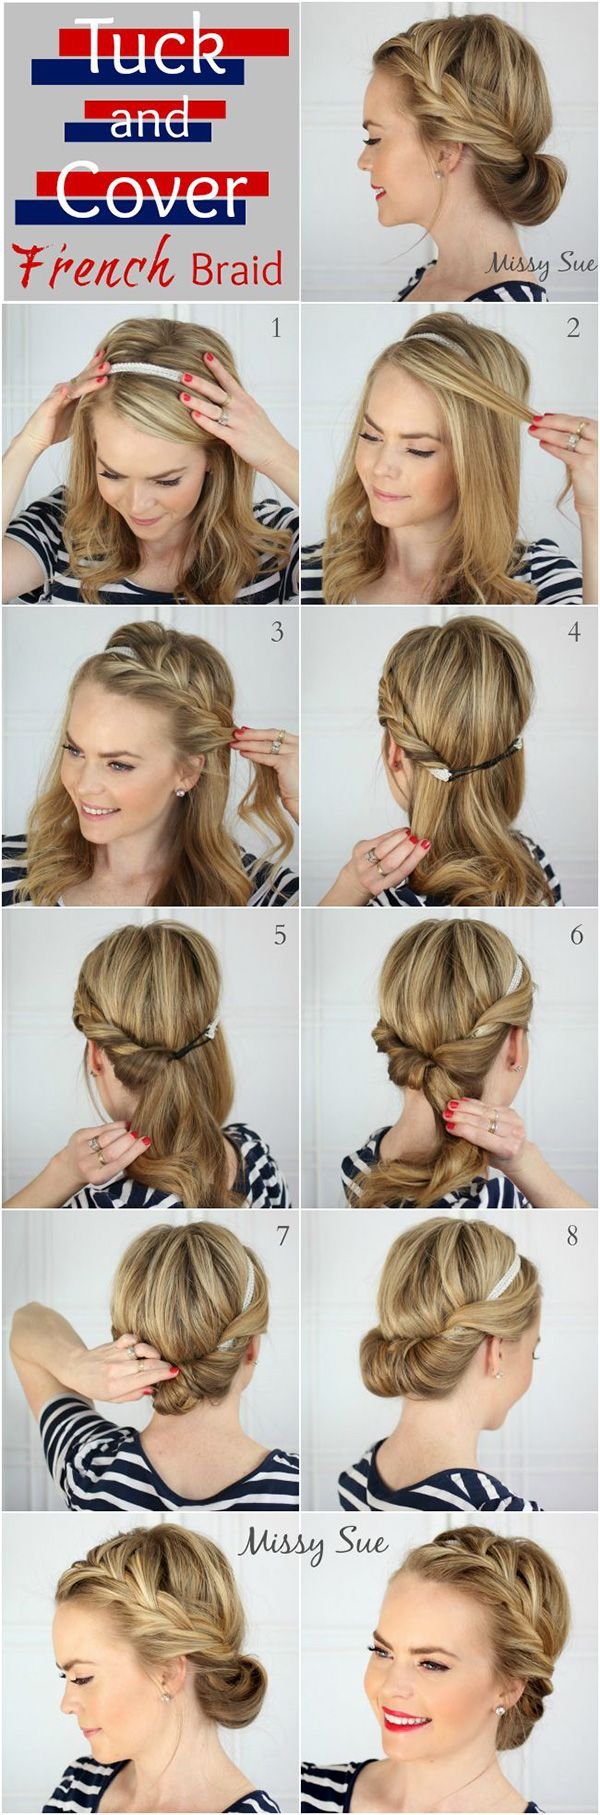 10 easy hairstyles for bangs to get them out of your face